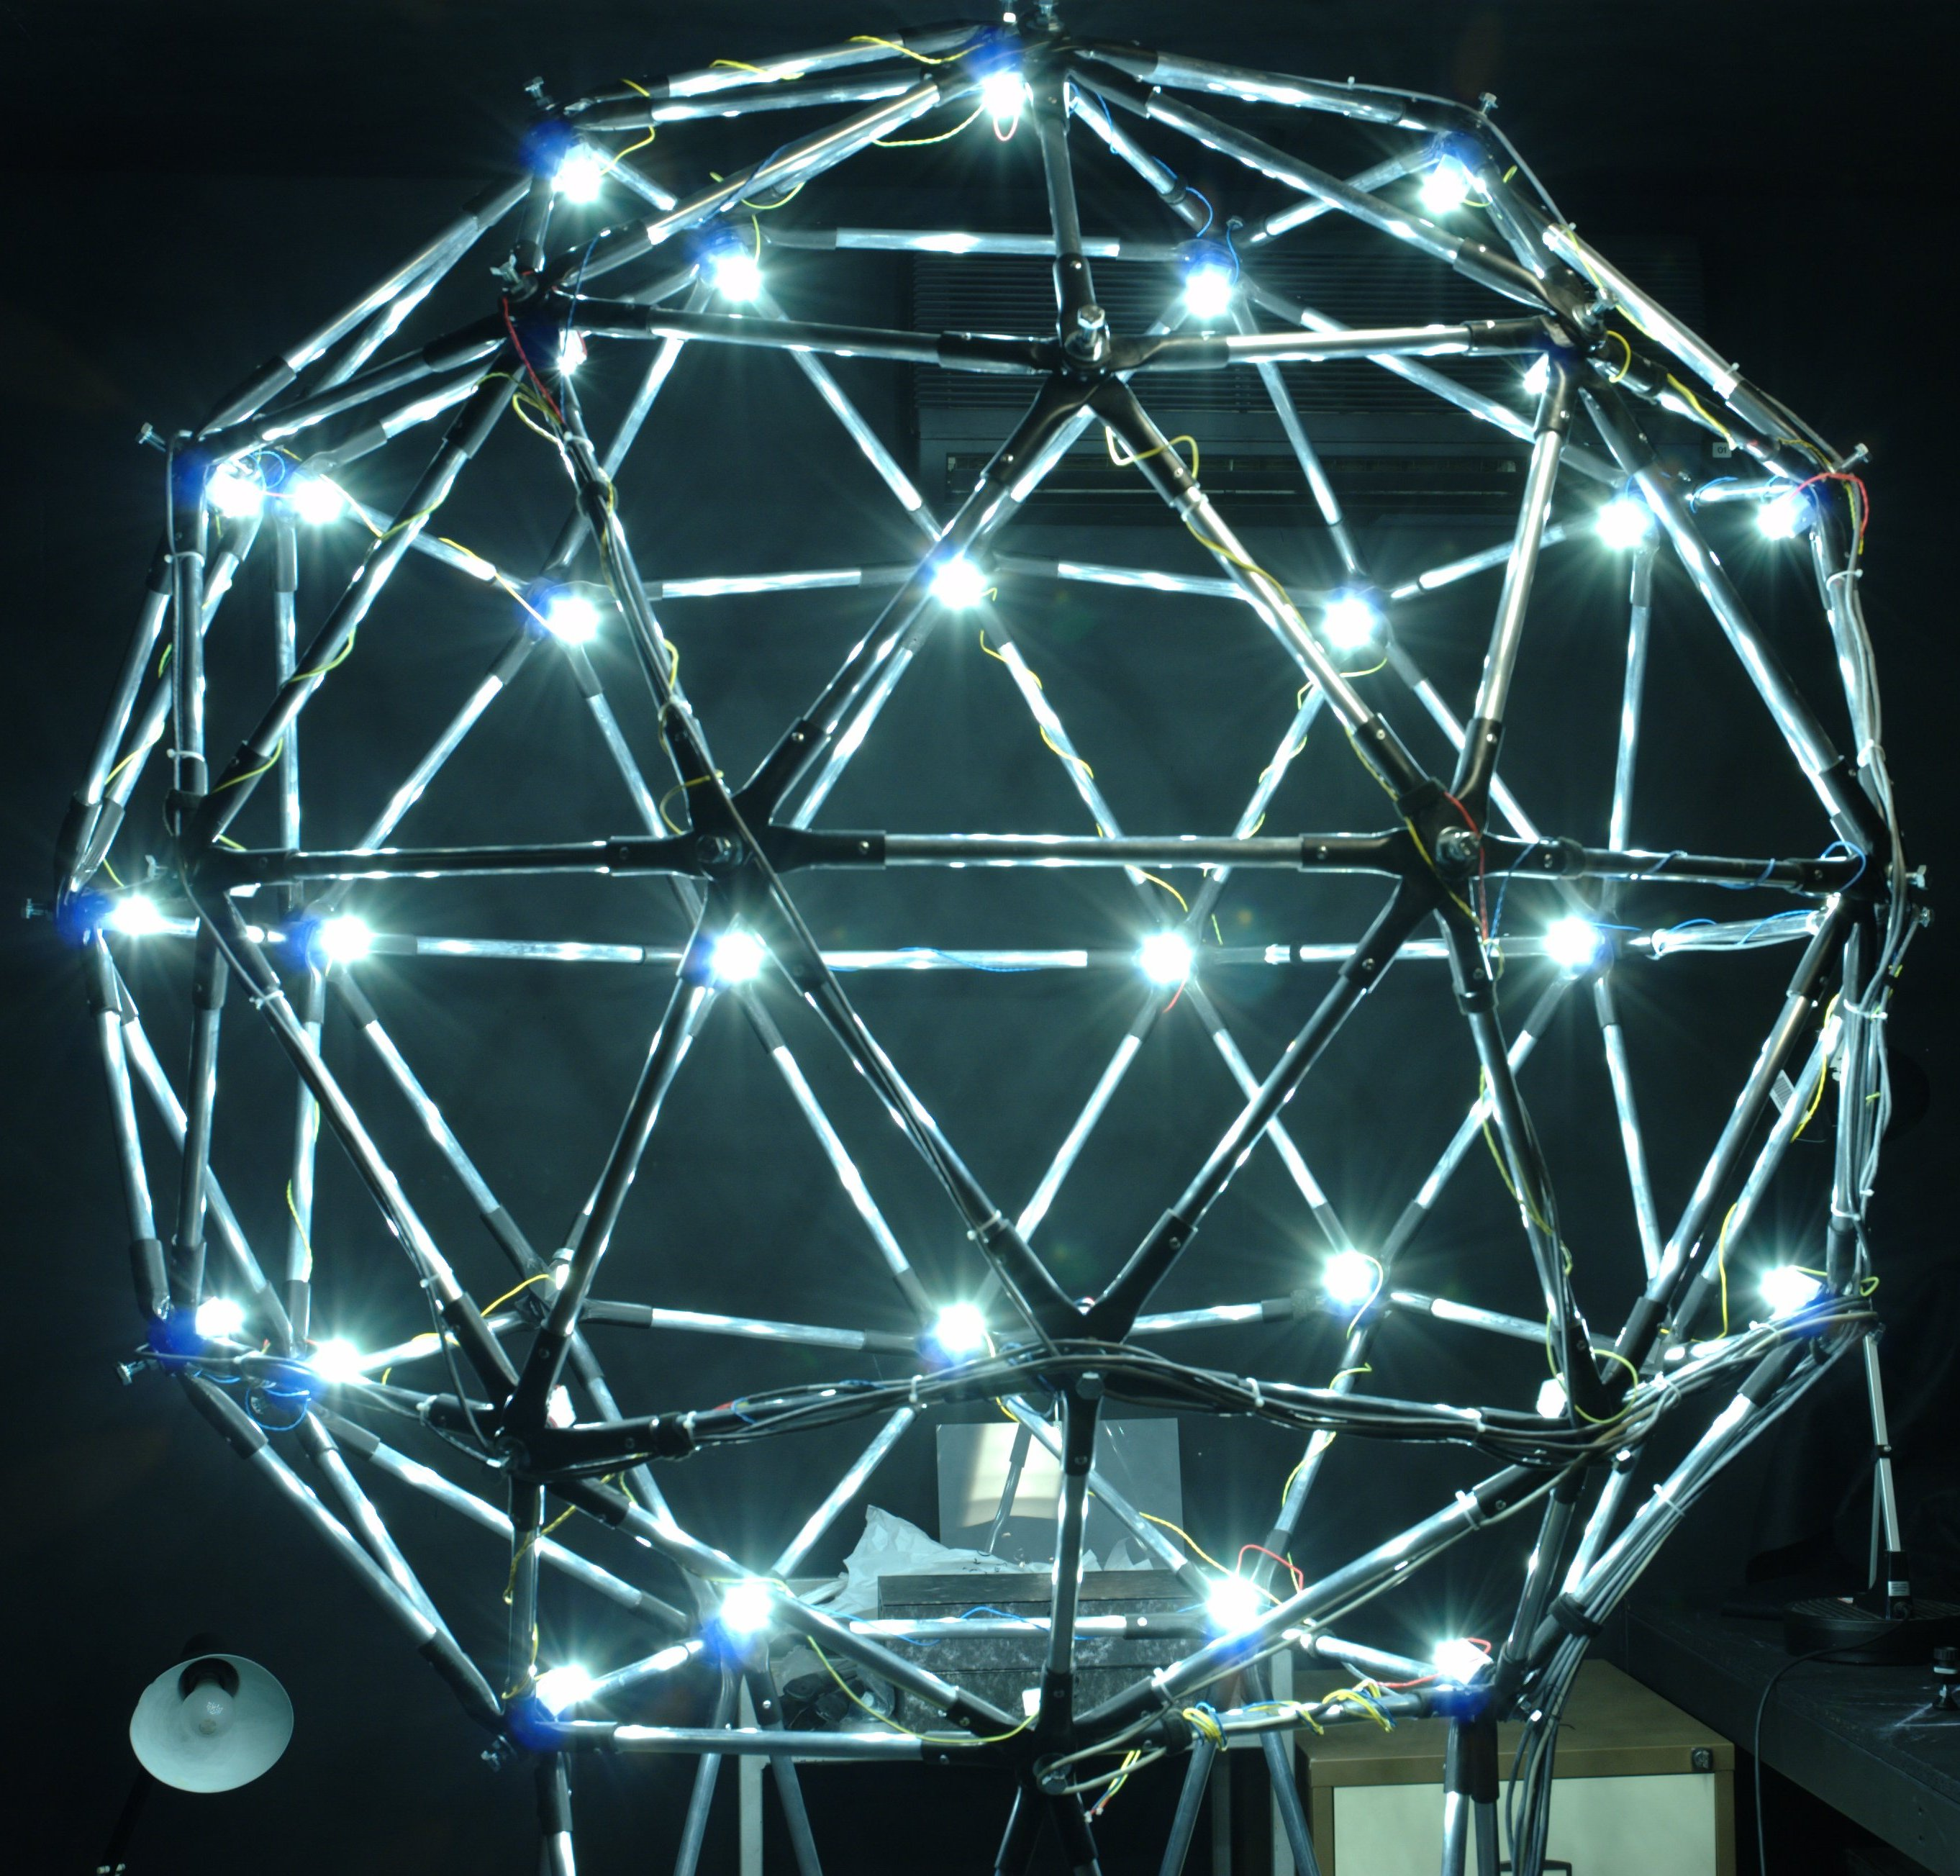 Geodesic Dome: 1000+ Images About Architecture-Geodesic-Domes On Pinterest